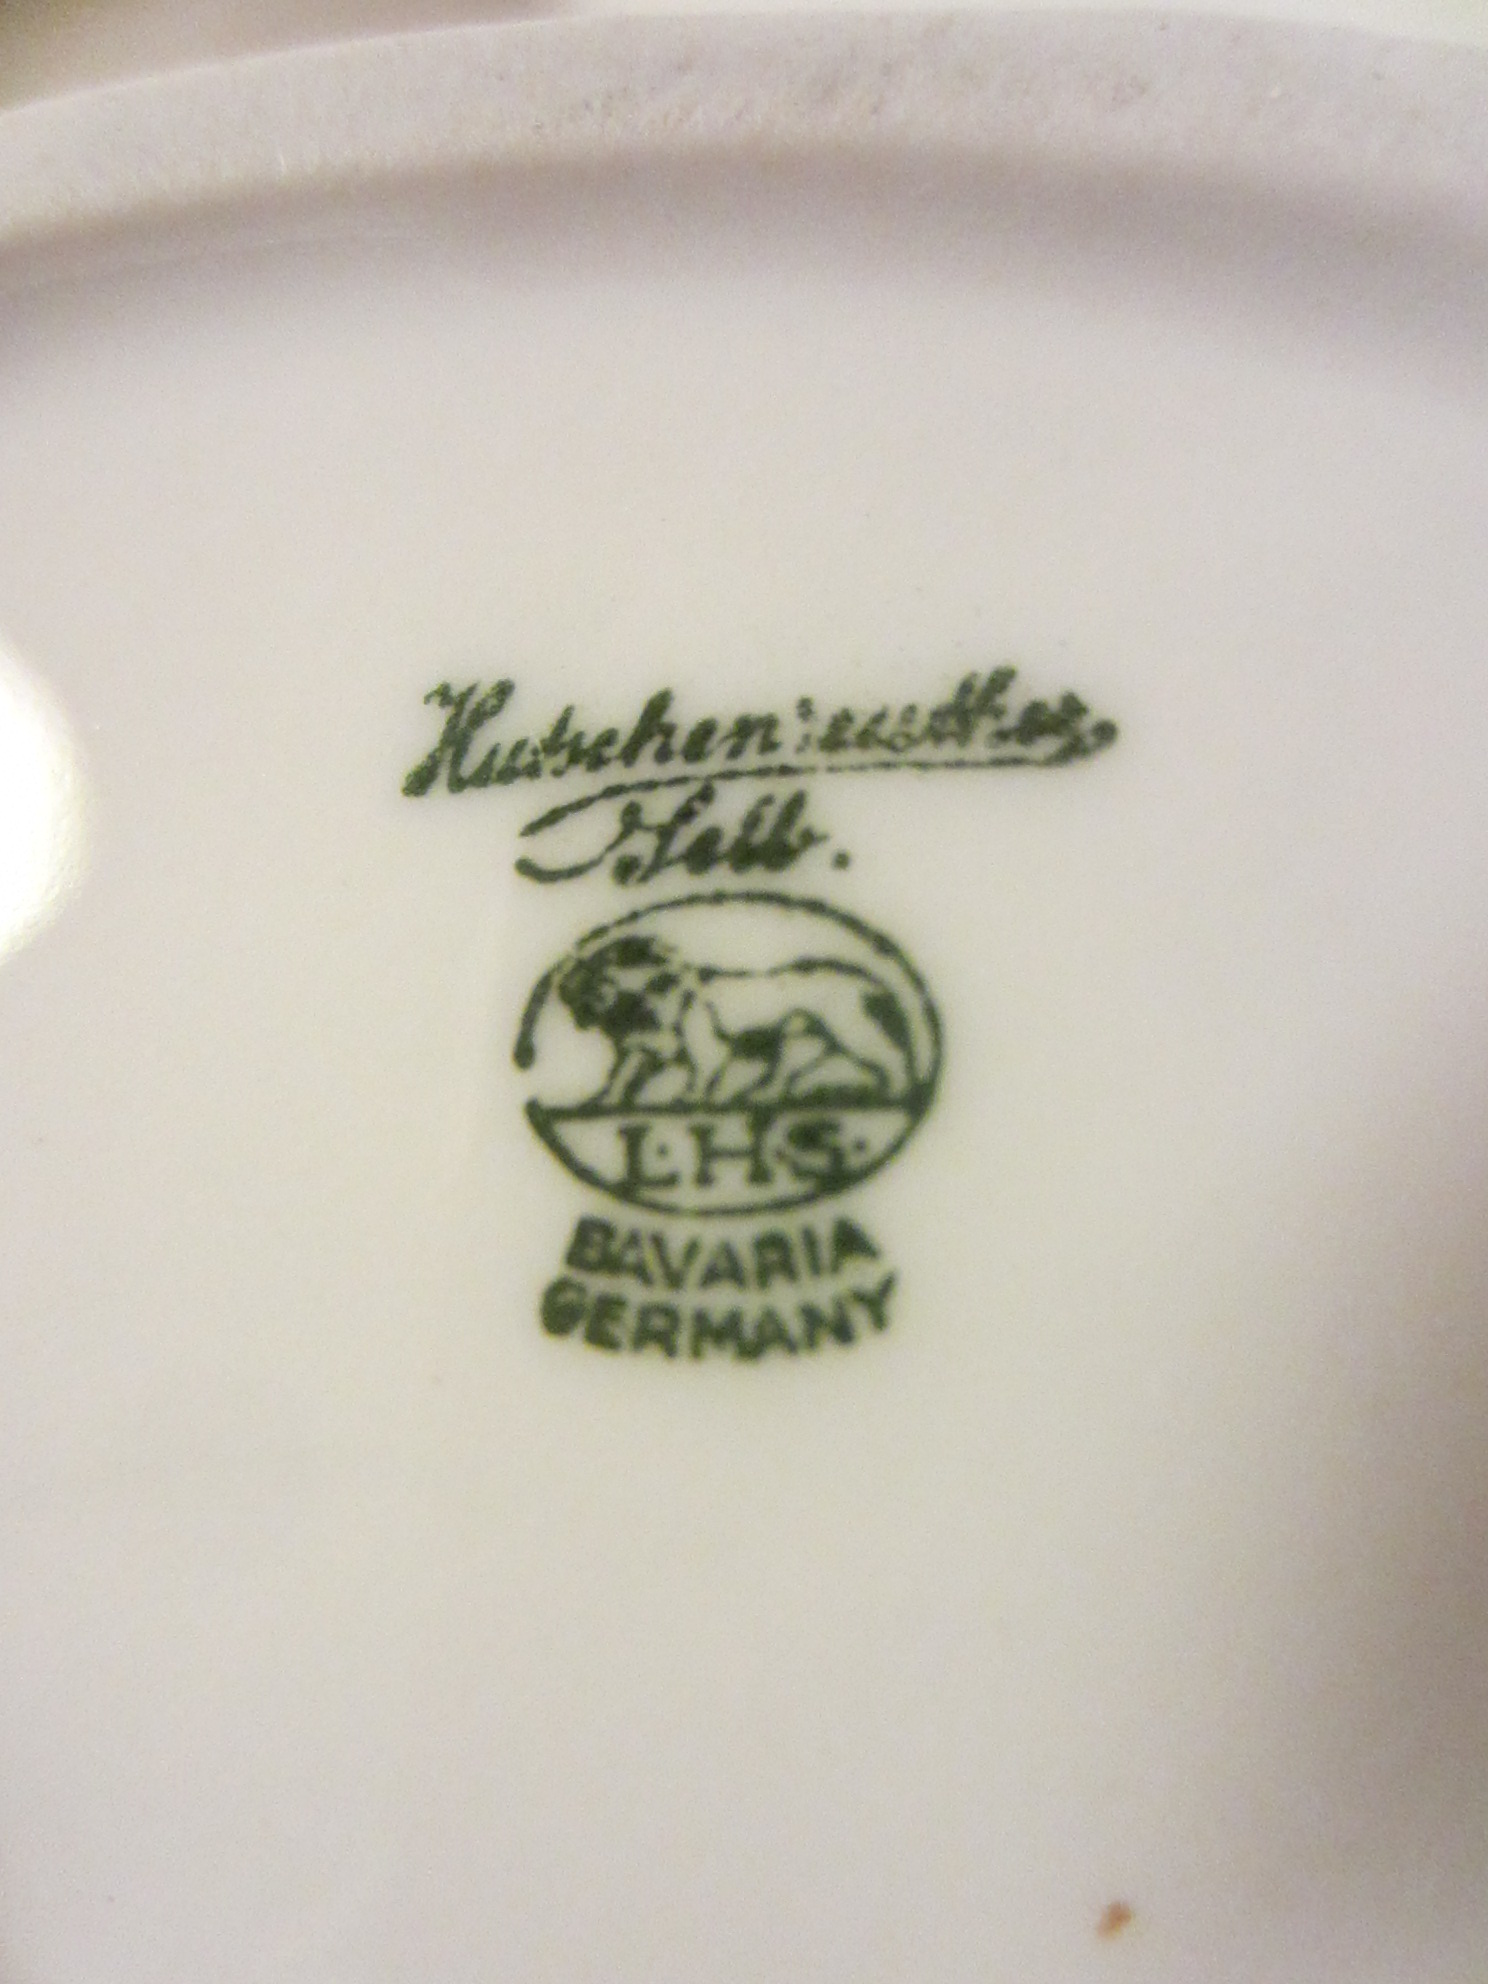 hutschenreuther selb bavaria germany porcelain dish for sale classifieds. Black Bedroom Furniture Sets. Home Design Ideas